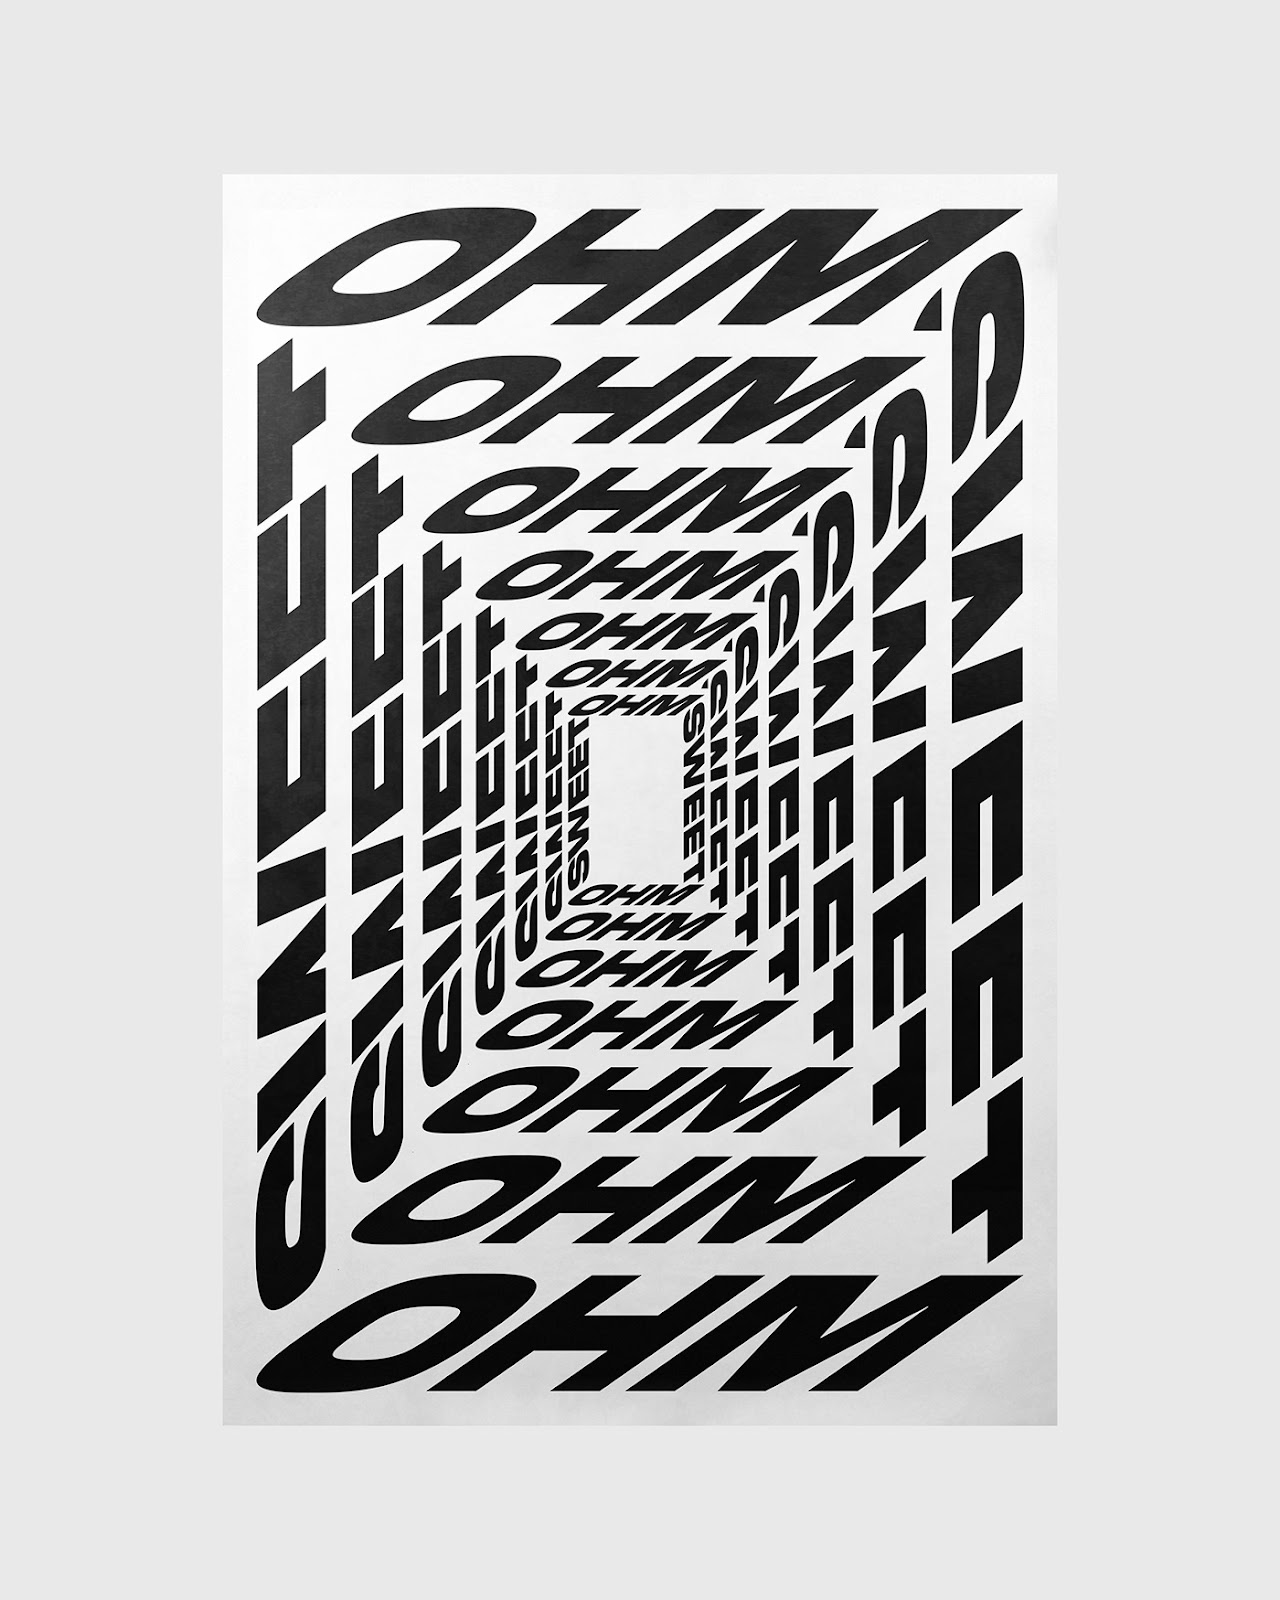 Ohm Sweet Ohm poster by Xtian Miller